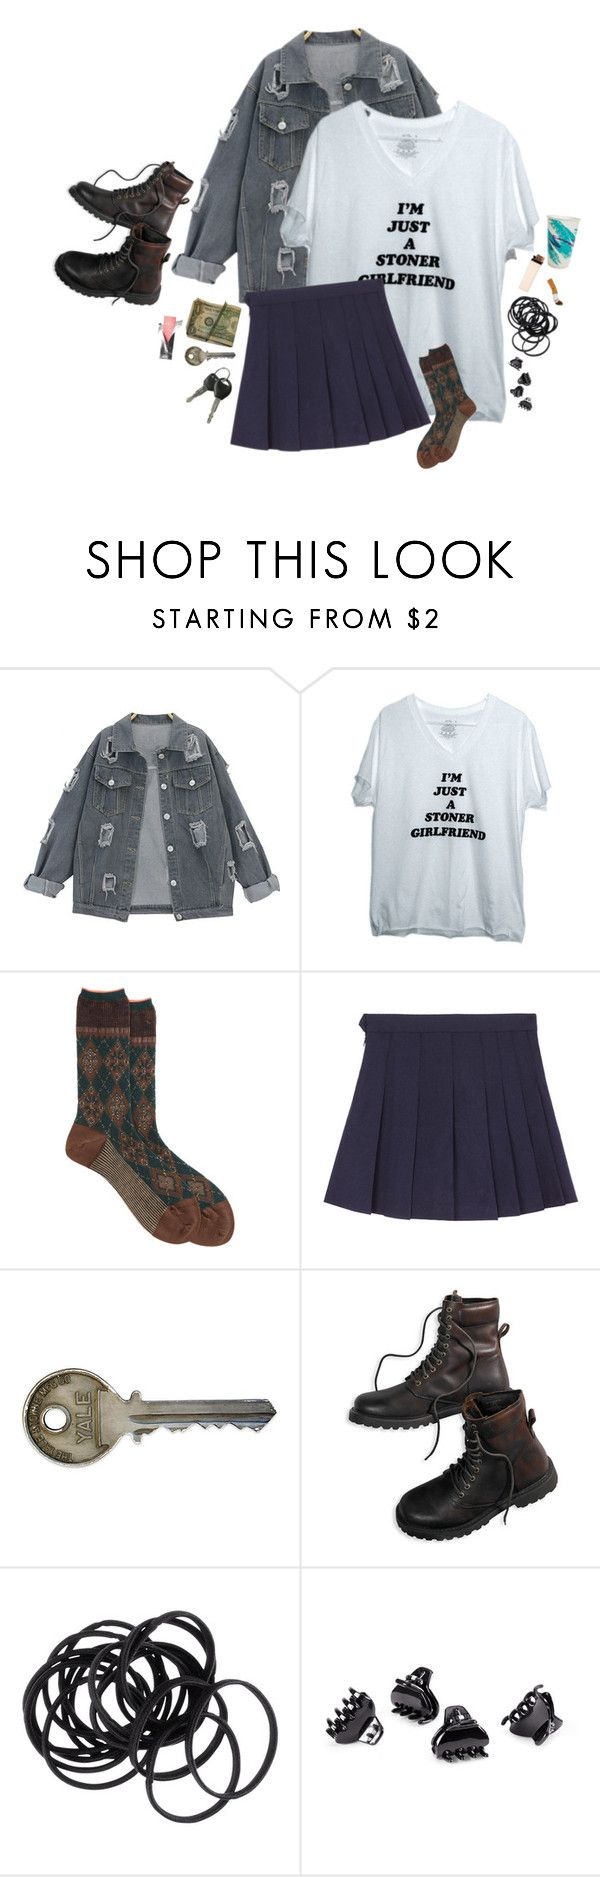 """See You Space Cowboy."" by kimnojams ❤ liked on Polyvore featuring Antipast, American Eagle Outfitters and H&M"